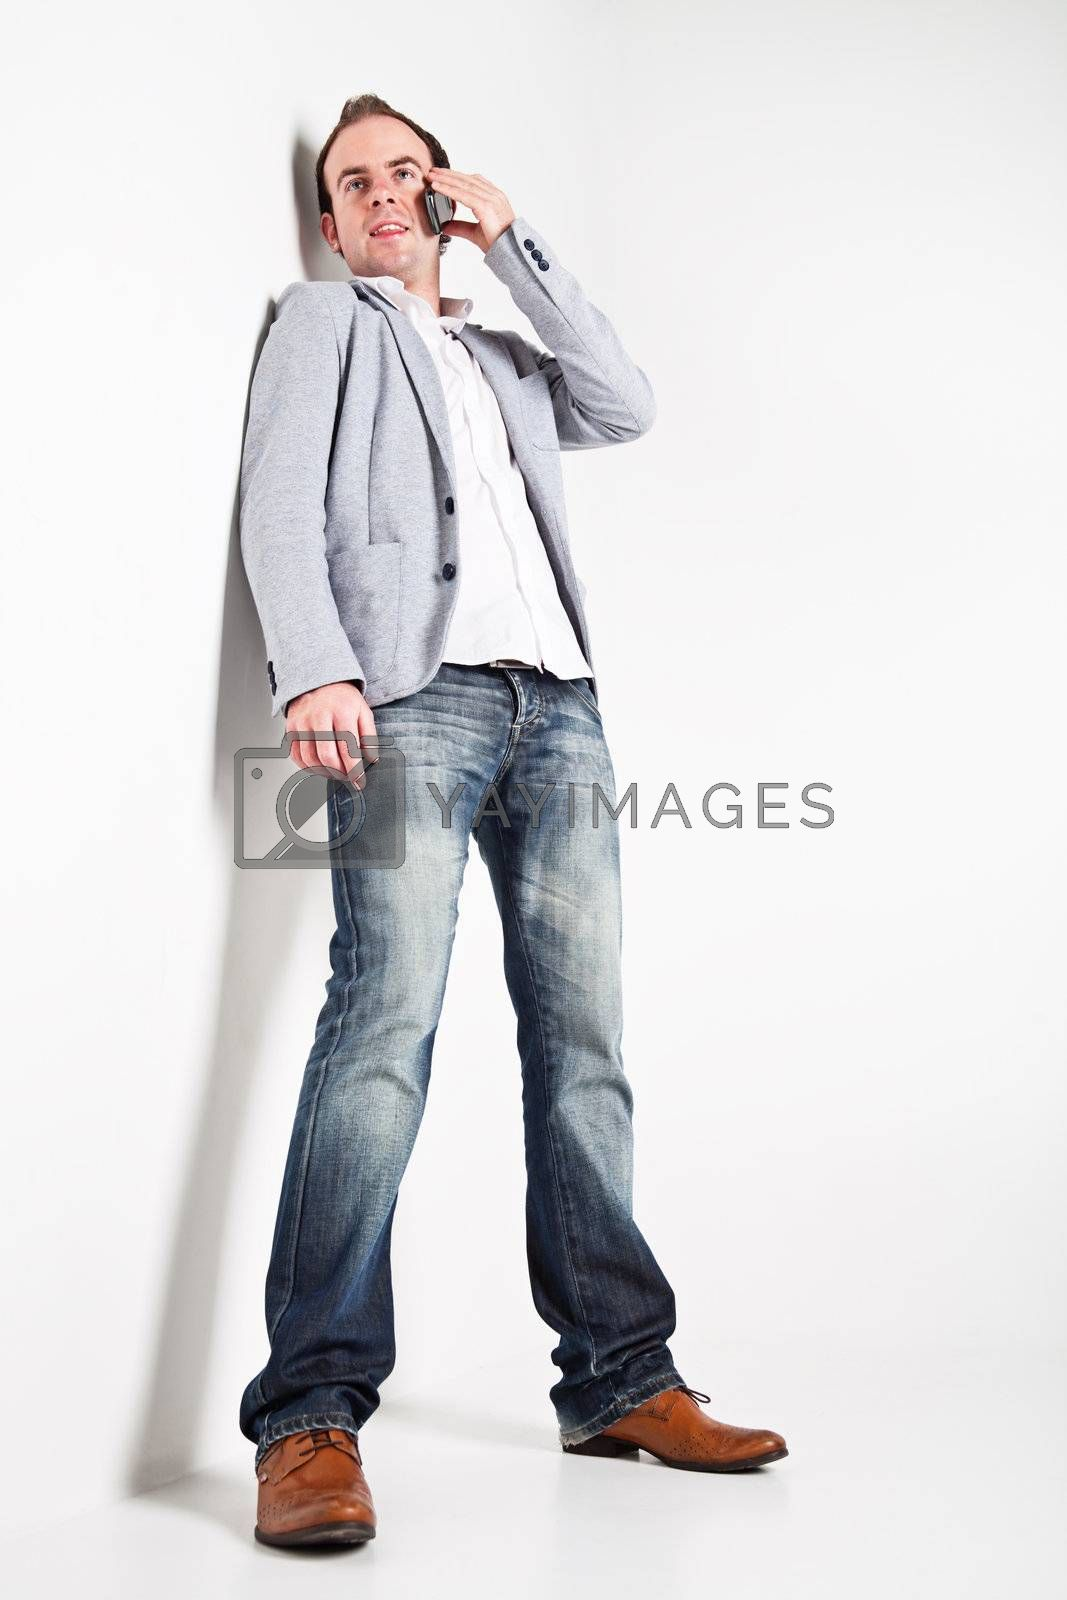 Low angle view at young man speaking on mobile phone